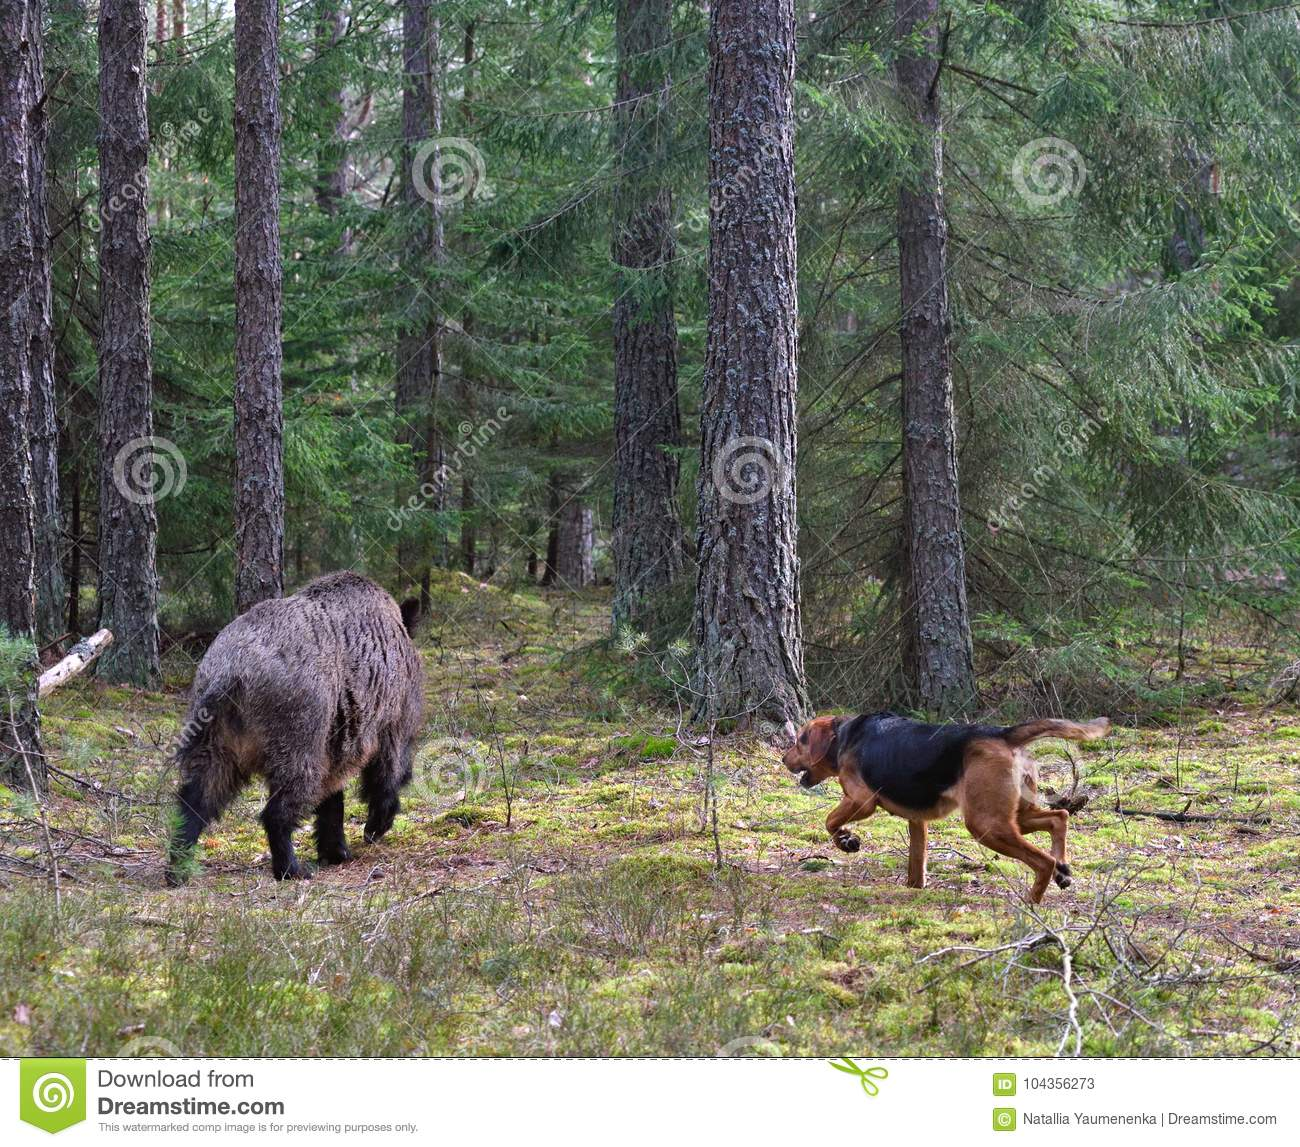 Hunting Dog Attack Wild Boar Stock Image - Image of